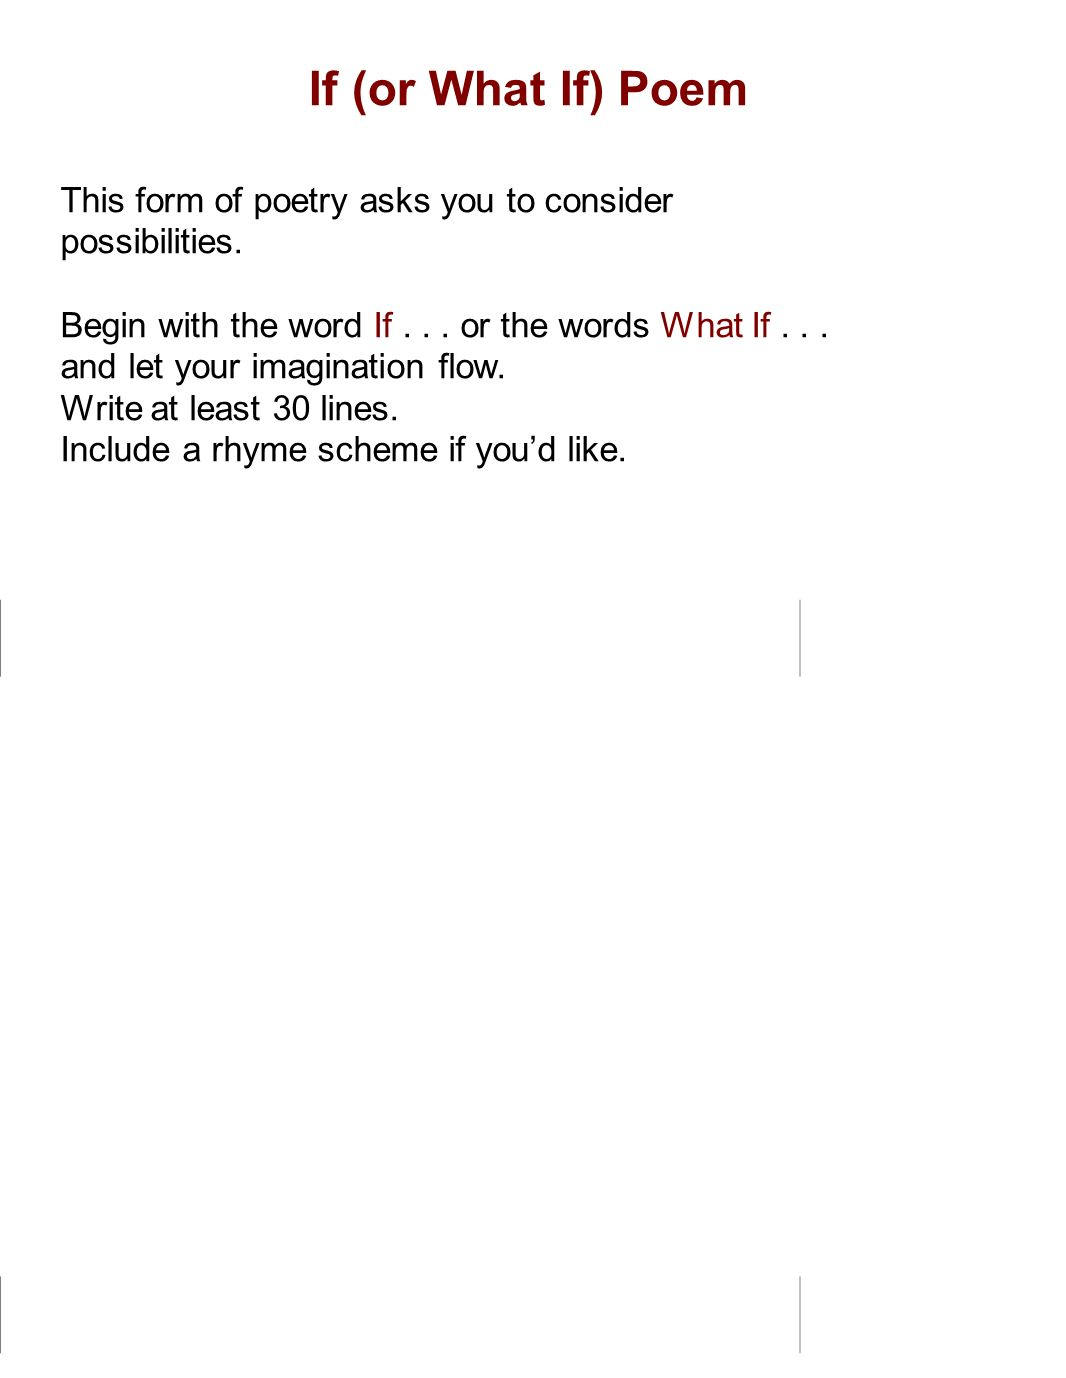 If (or What If) Poem This form of poetry asks you to consider possibilities. Begin with the word If... or the words What If... and let your imaginatio